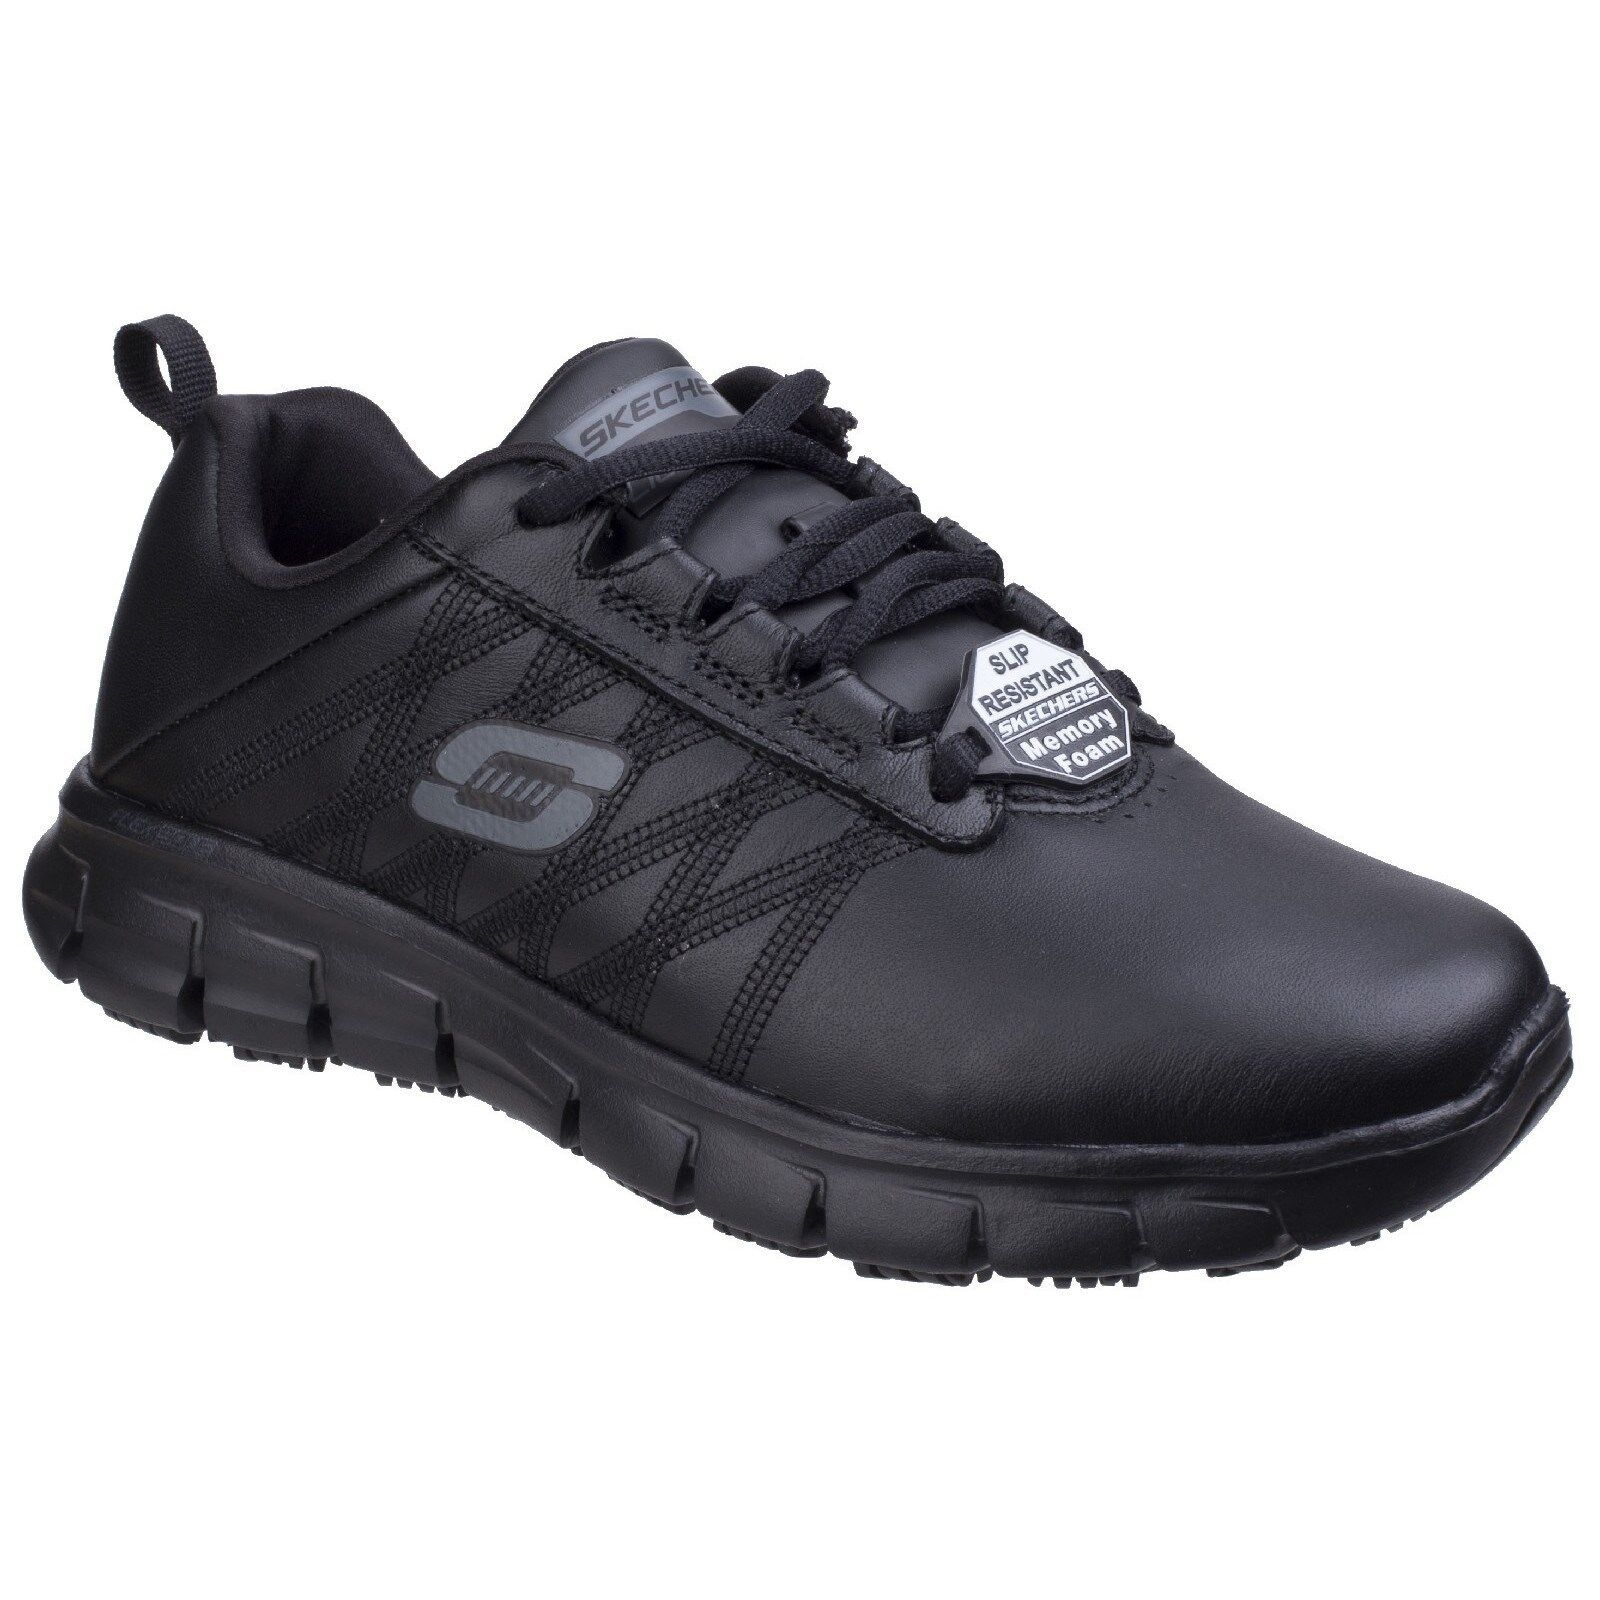 Details about Skechers Sure Track Erath SR Work Trainers Womens Memory Foam Leather Shoes